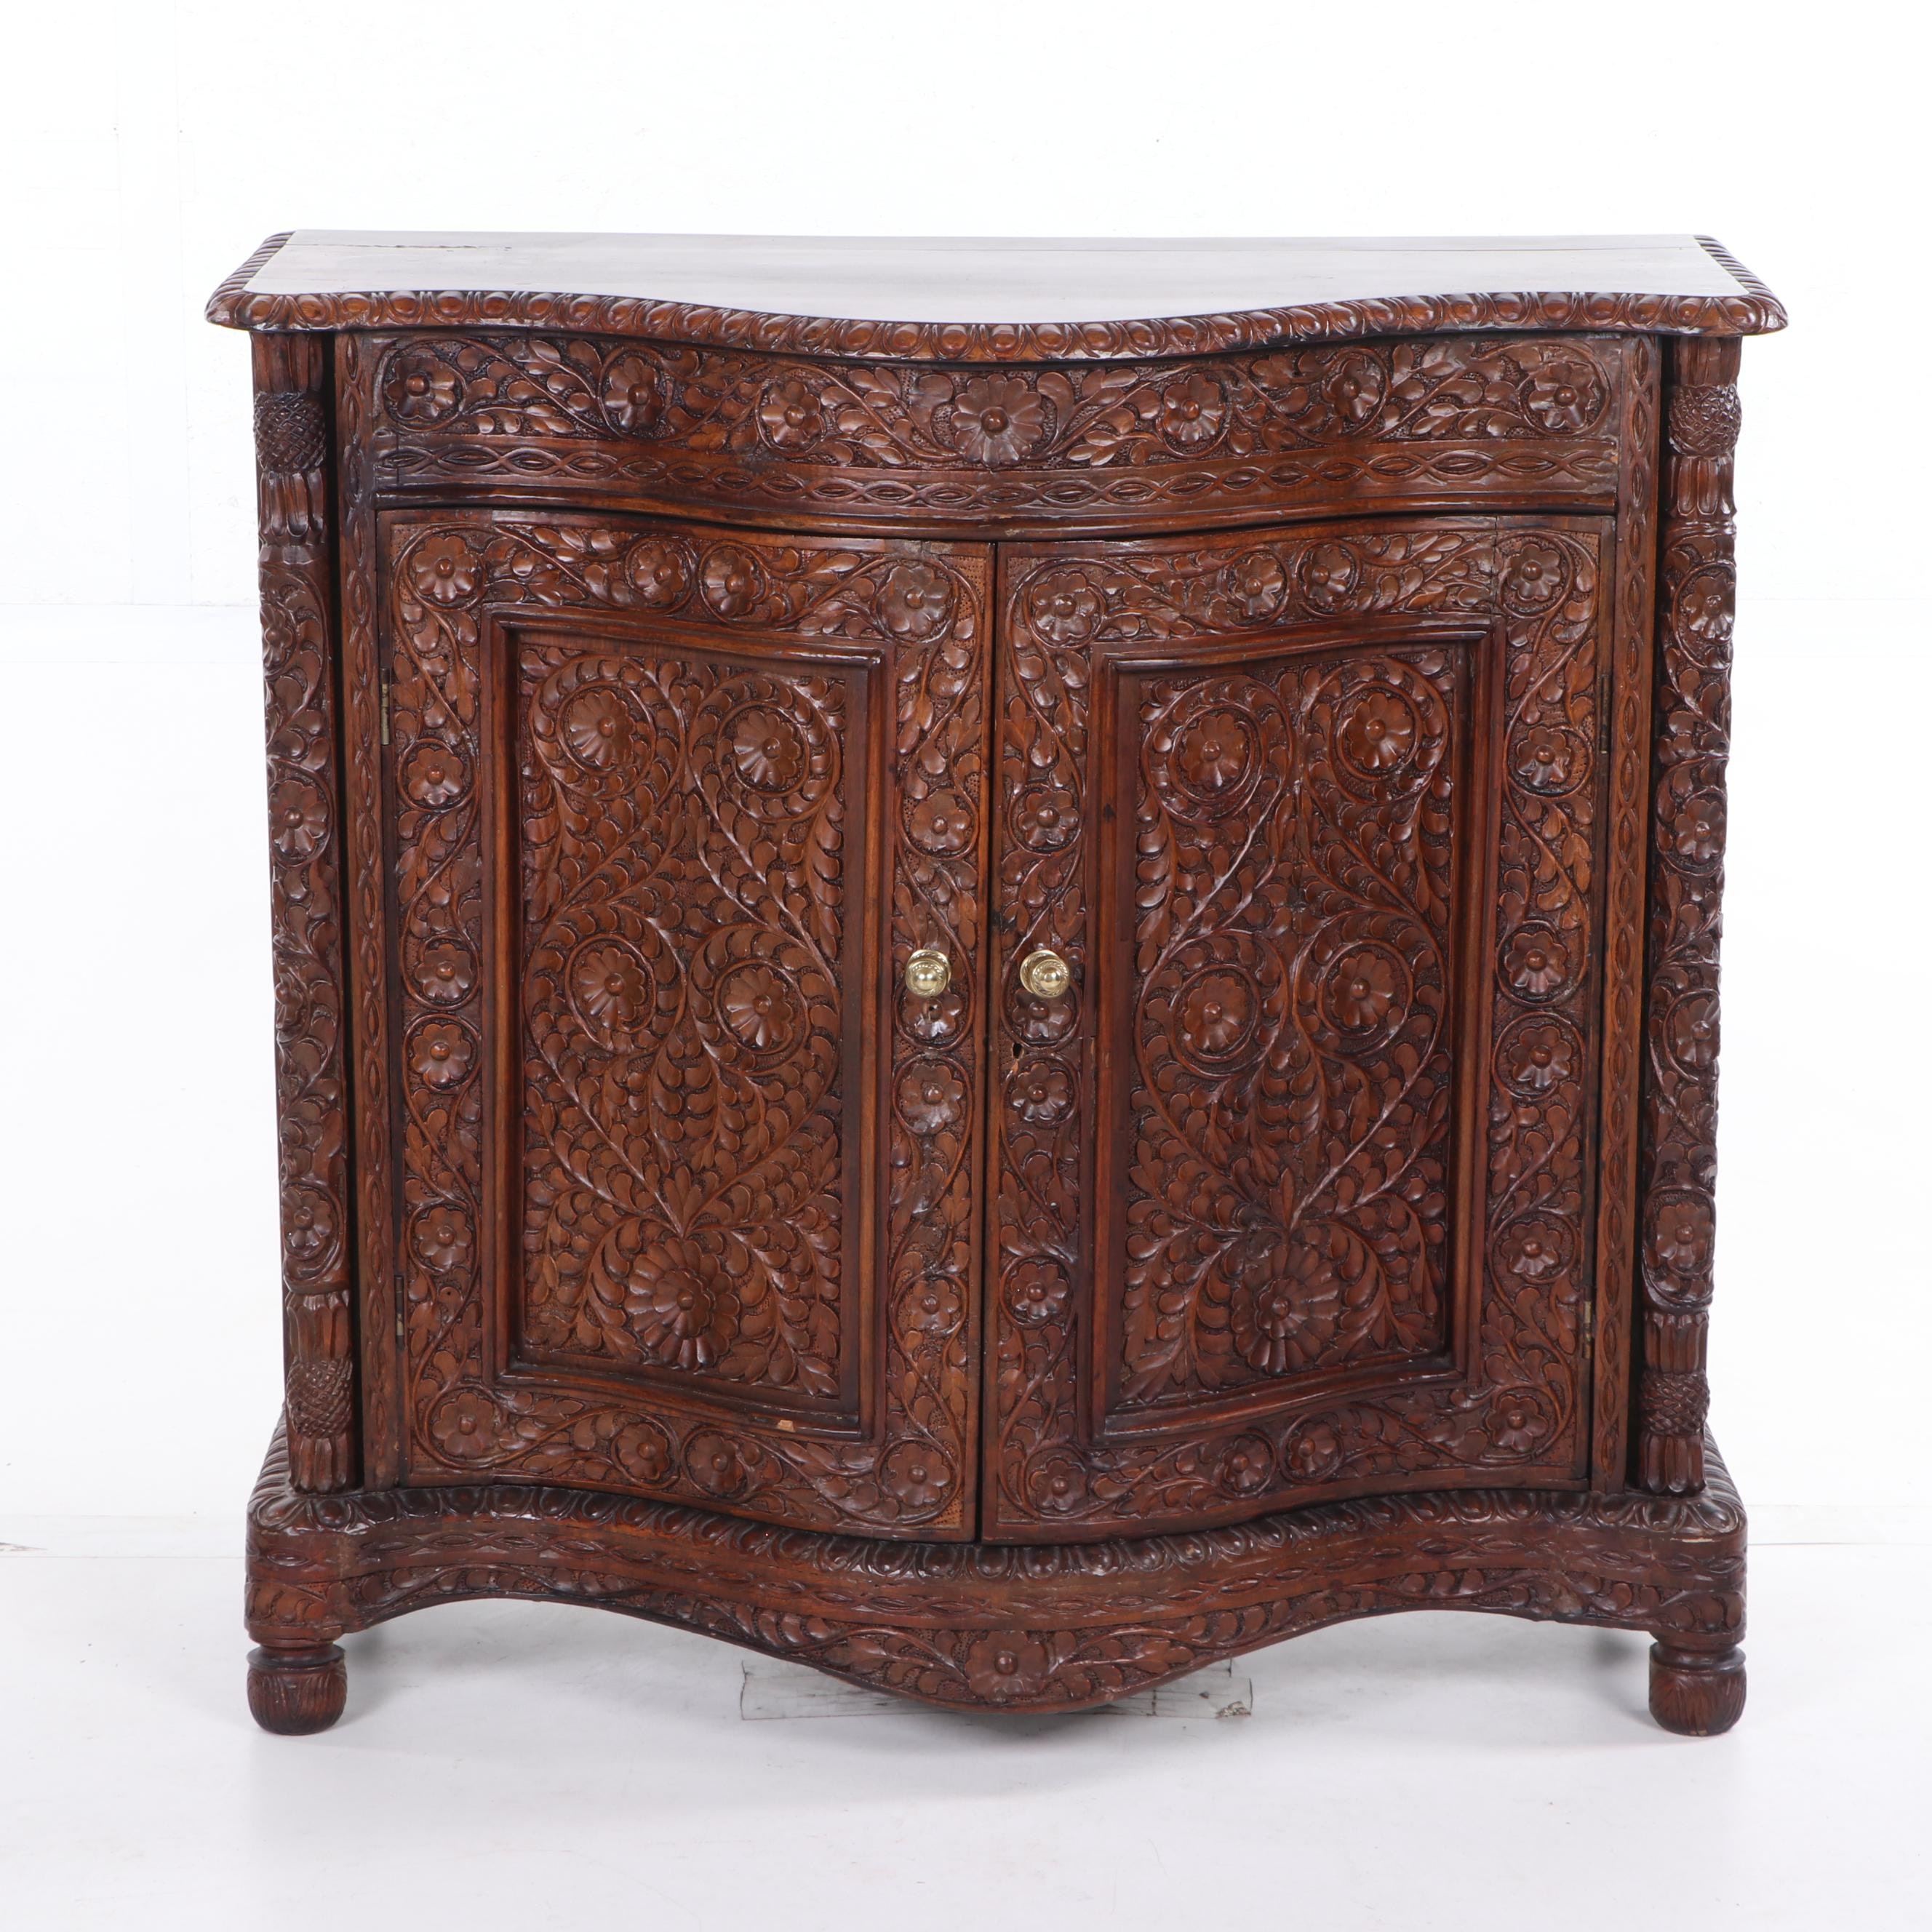 Renaissance Style Ornately Carved Cabinet, Late 19th Century